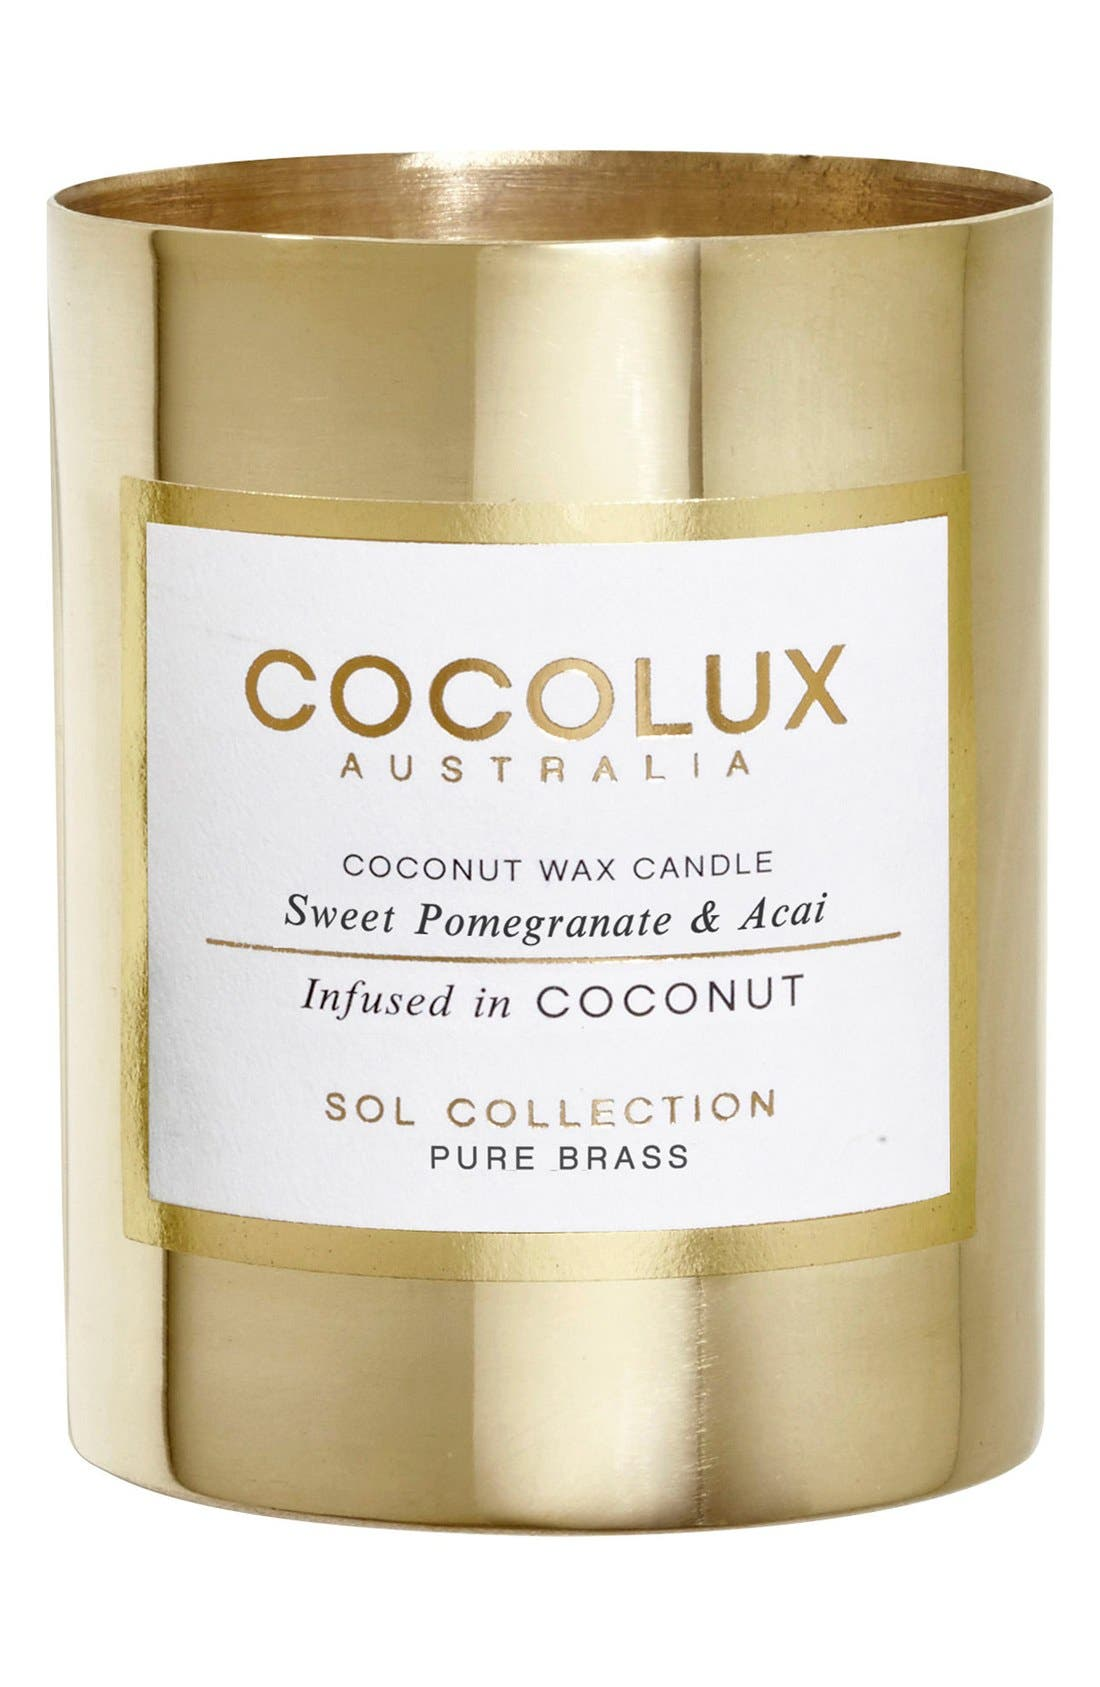 Cocolux Australia Sweet Pomegranate & Acai Small Brass Candle